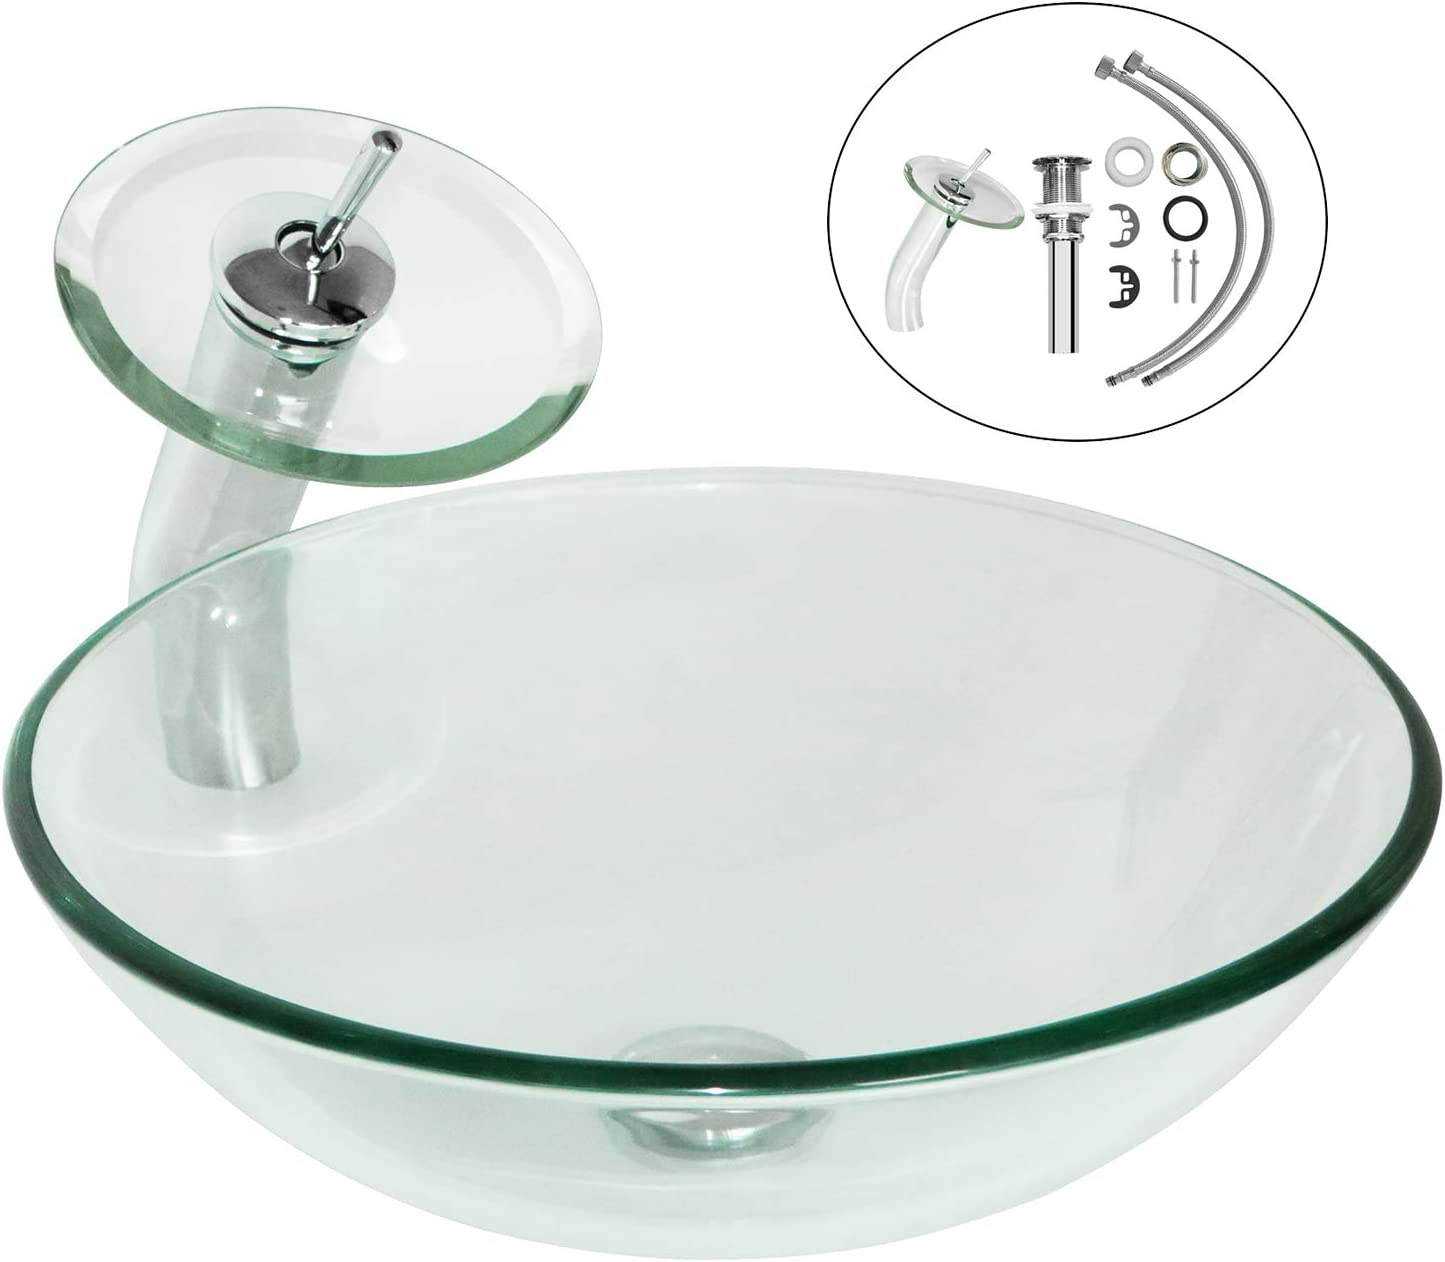 Walcut Cleared Tempered Glass Vessel Bathroom Vanity Sink Round Bowl, Waterfall Faucet Pop-up Drain Combo, Frosted Color